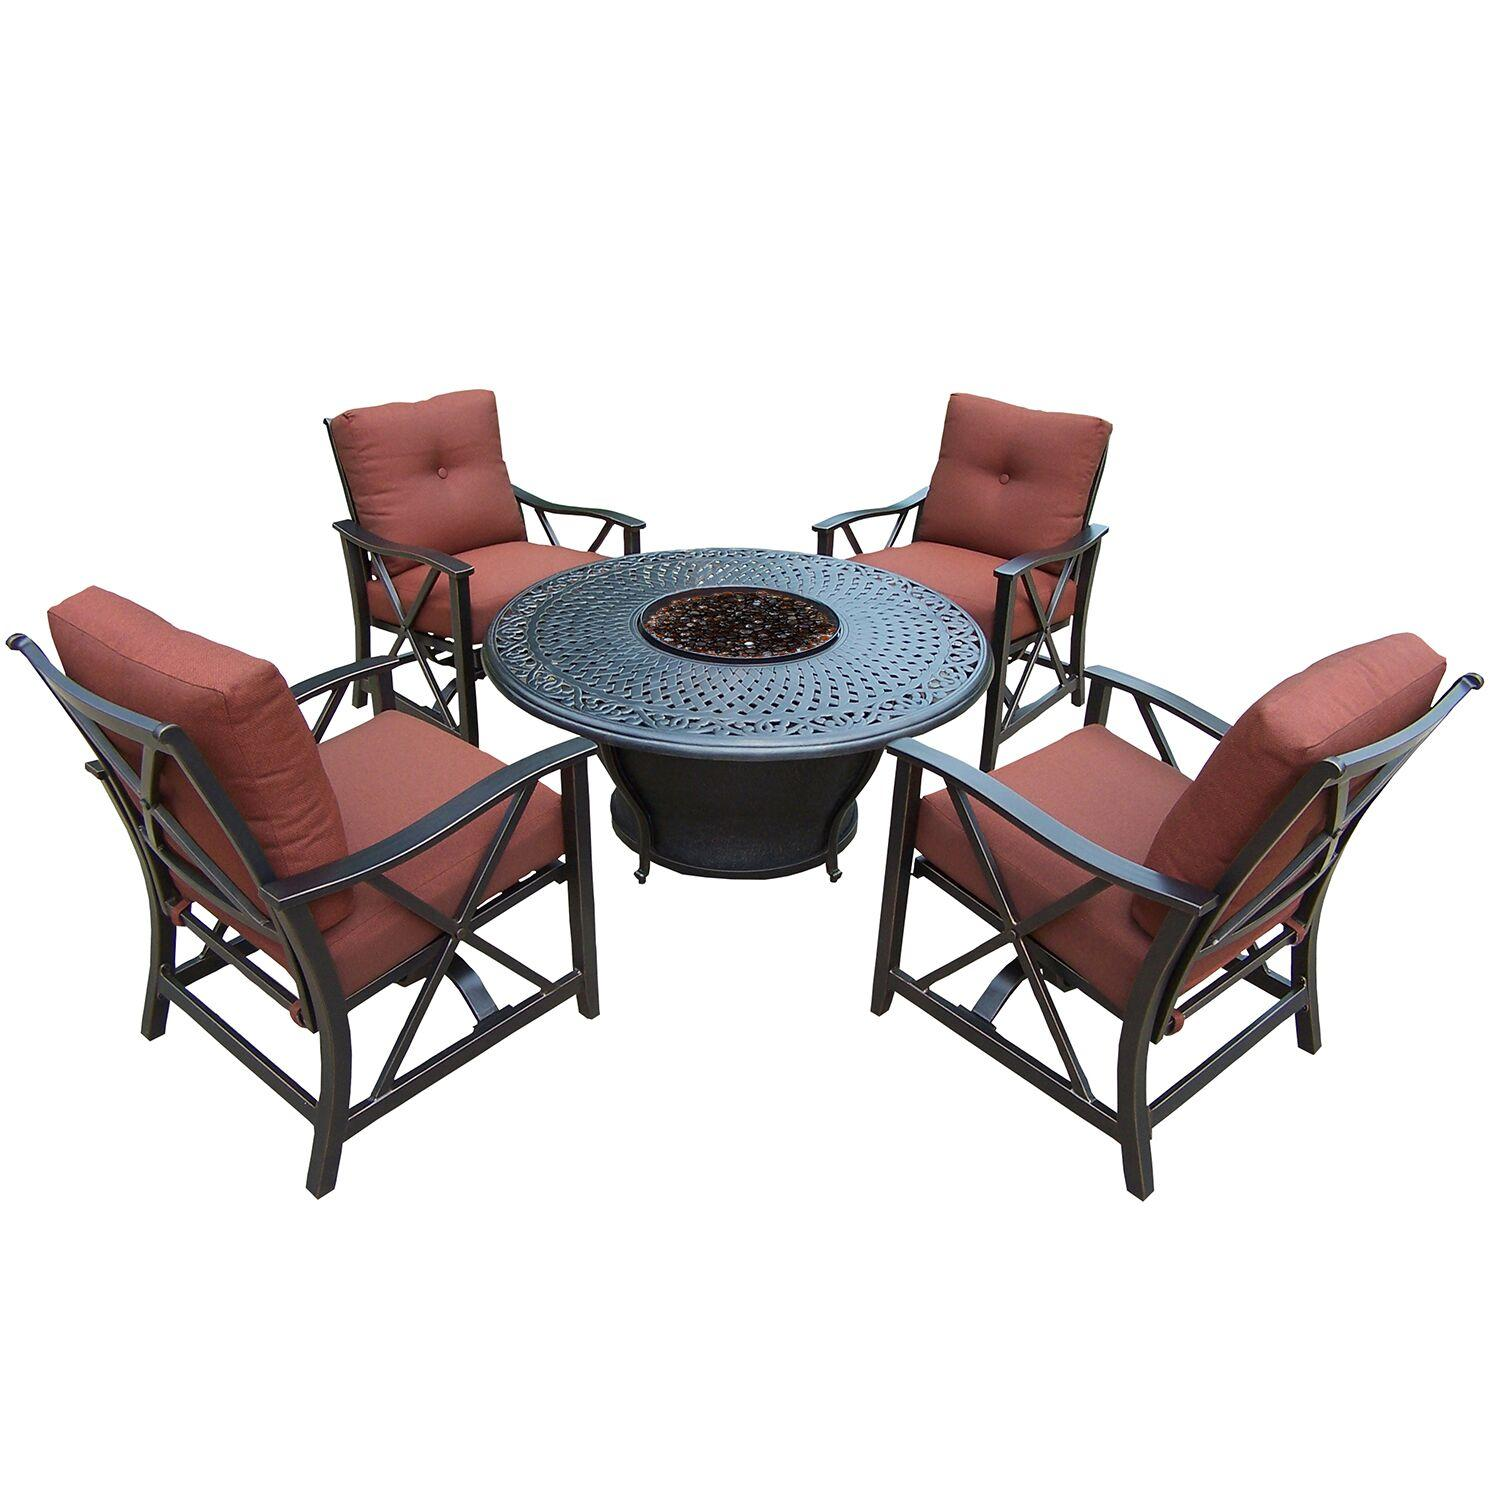 5-Piece Bronze Finish Aluminum Outdoor Furniture Patio Fire Pit Deep Seating Chat Set - Red Cushions